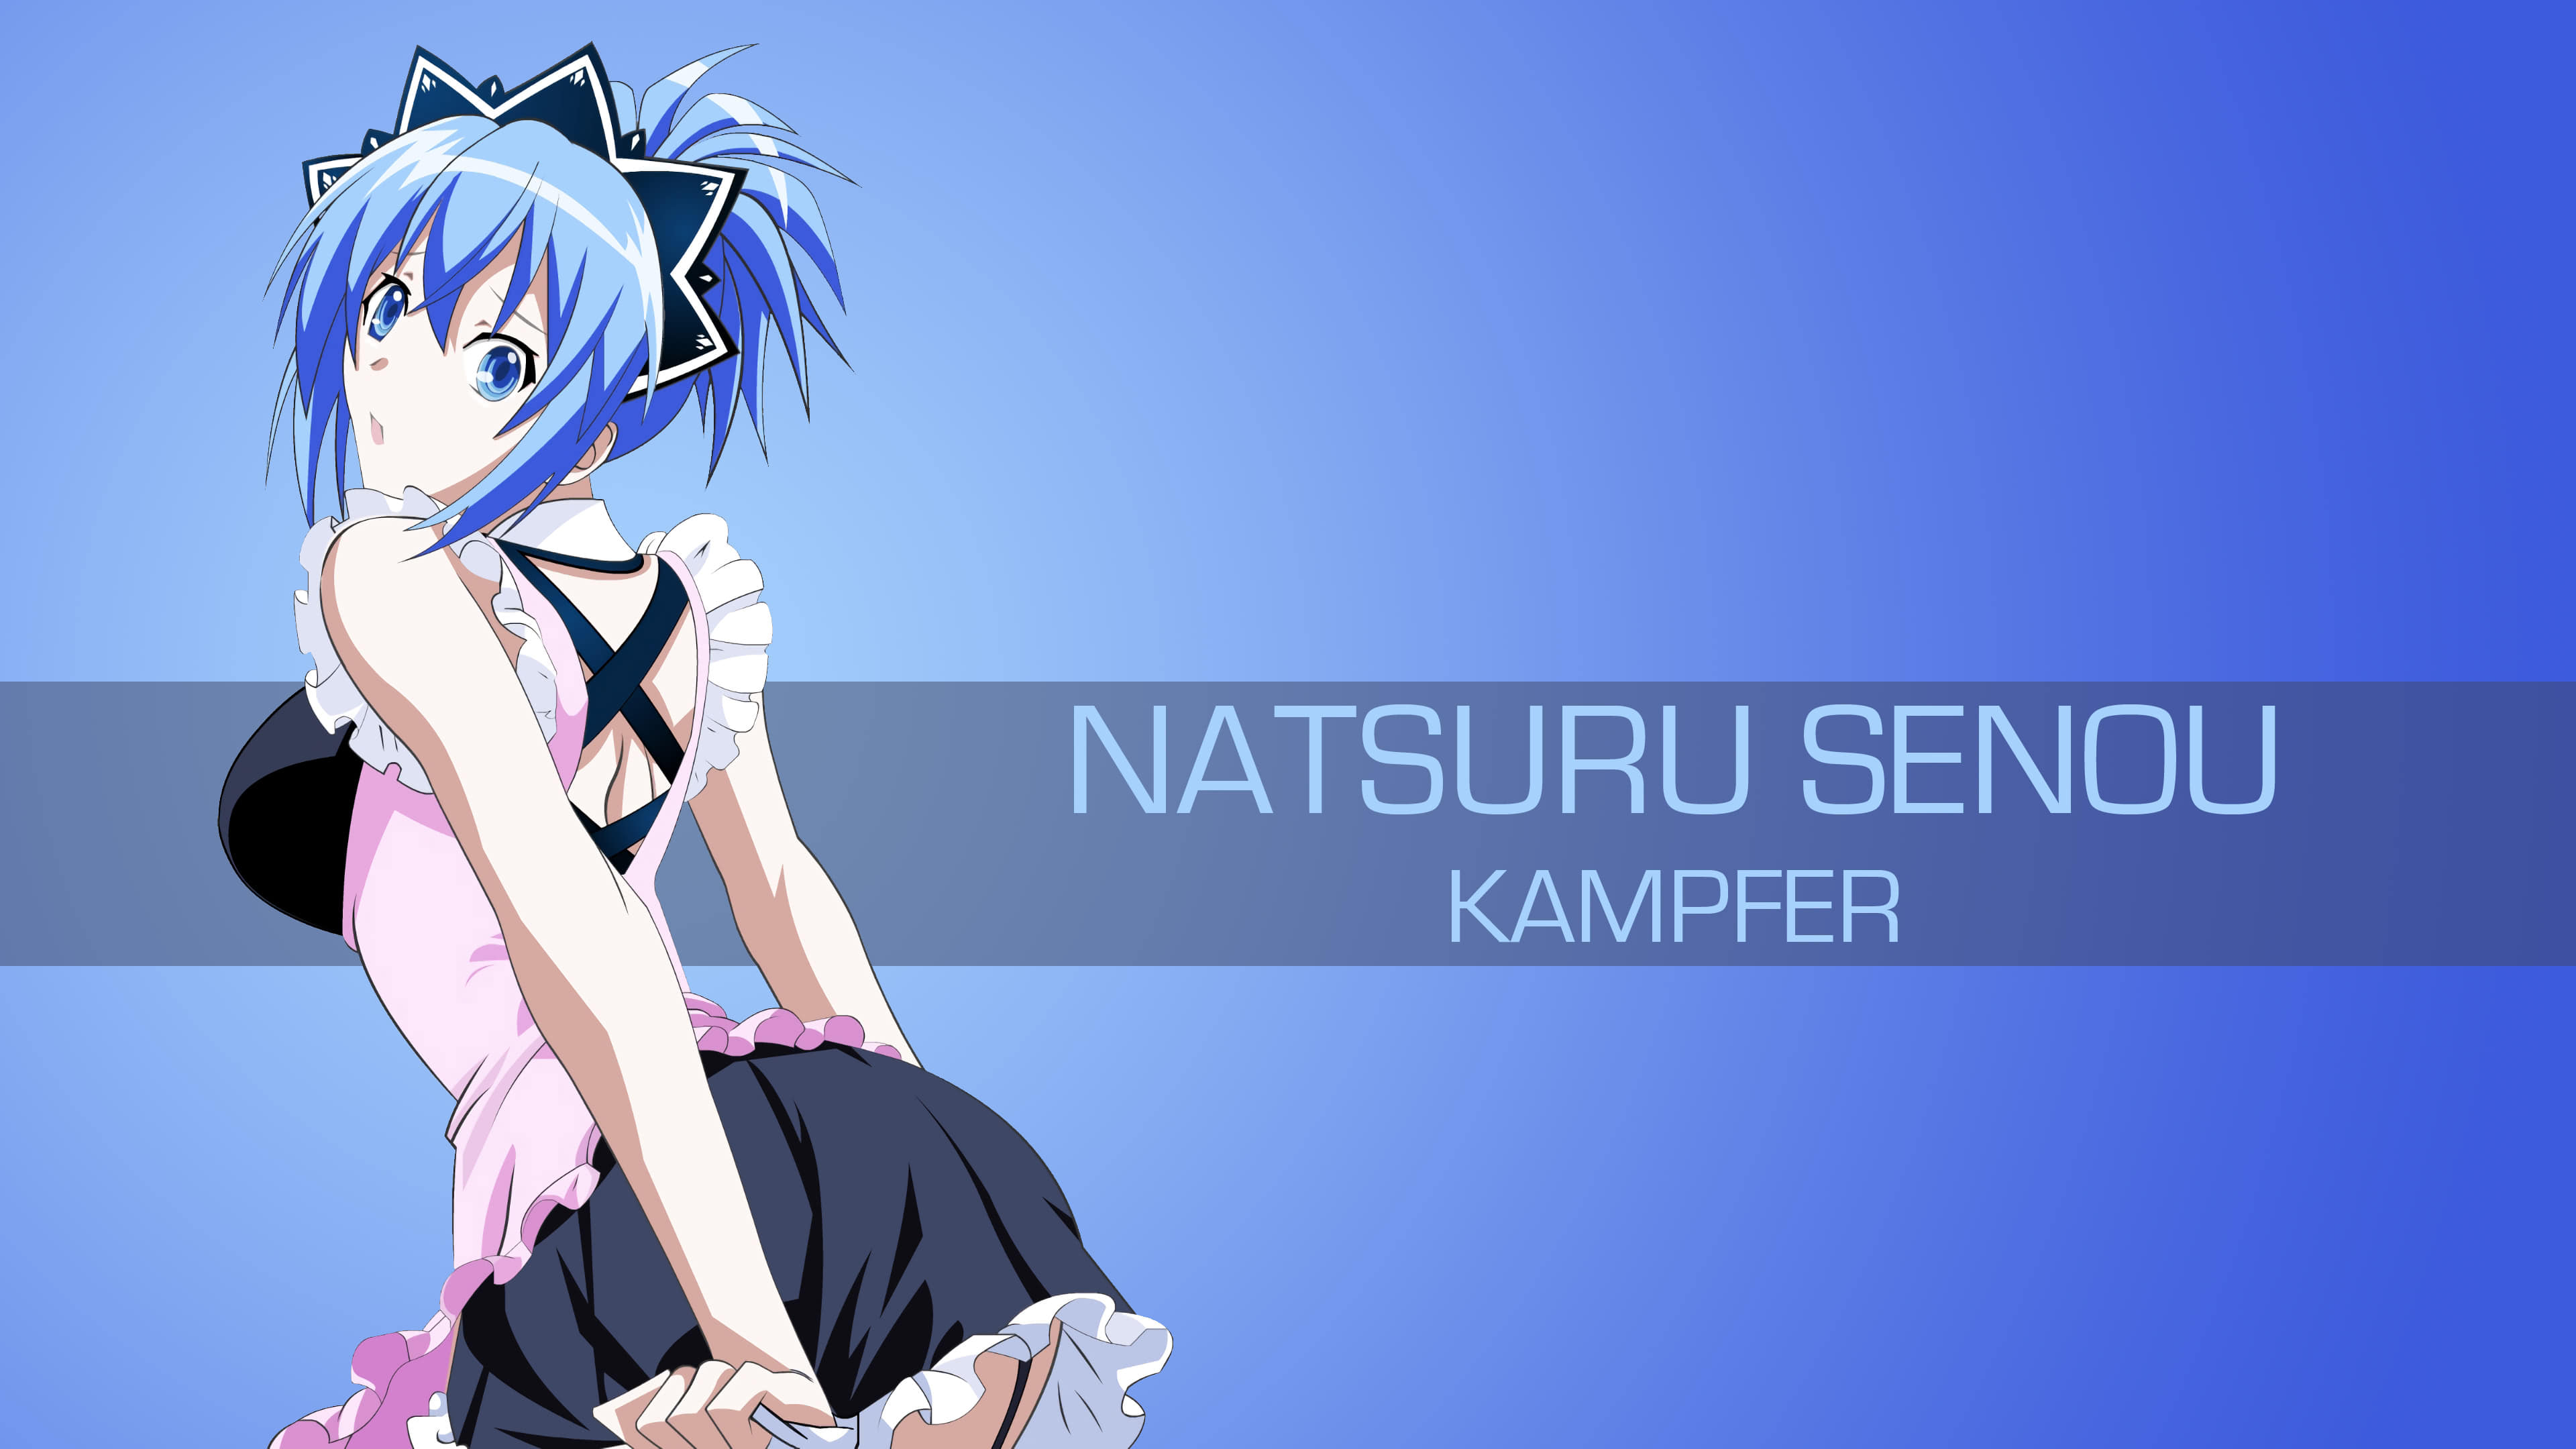 natsuru seno kampfer uhd 4k wallpaper